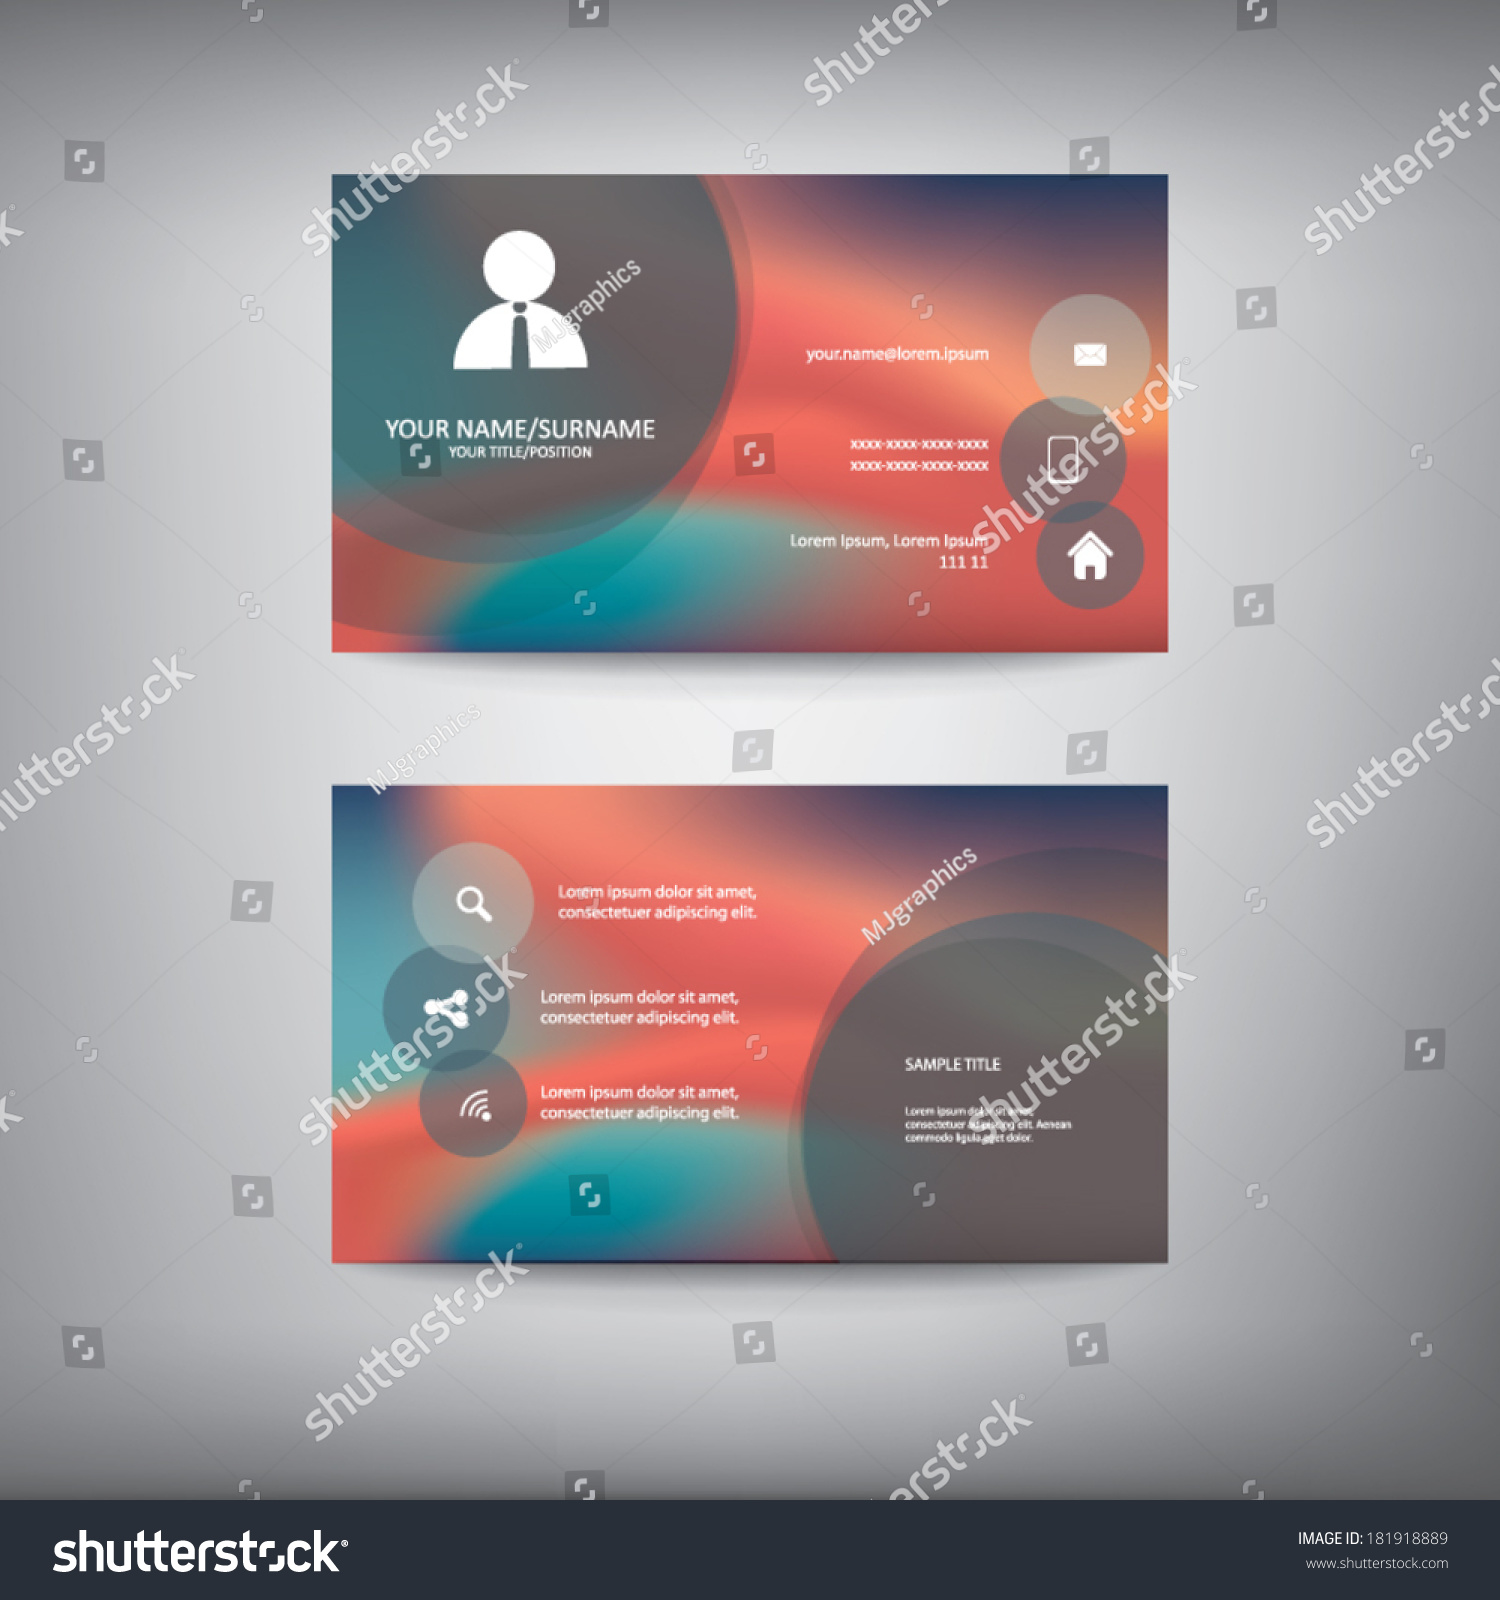 Business card template icons information space stock vector business card template with icons for information and space for text eps10 vector illustration magicingreecefo Image collections